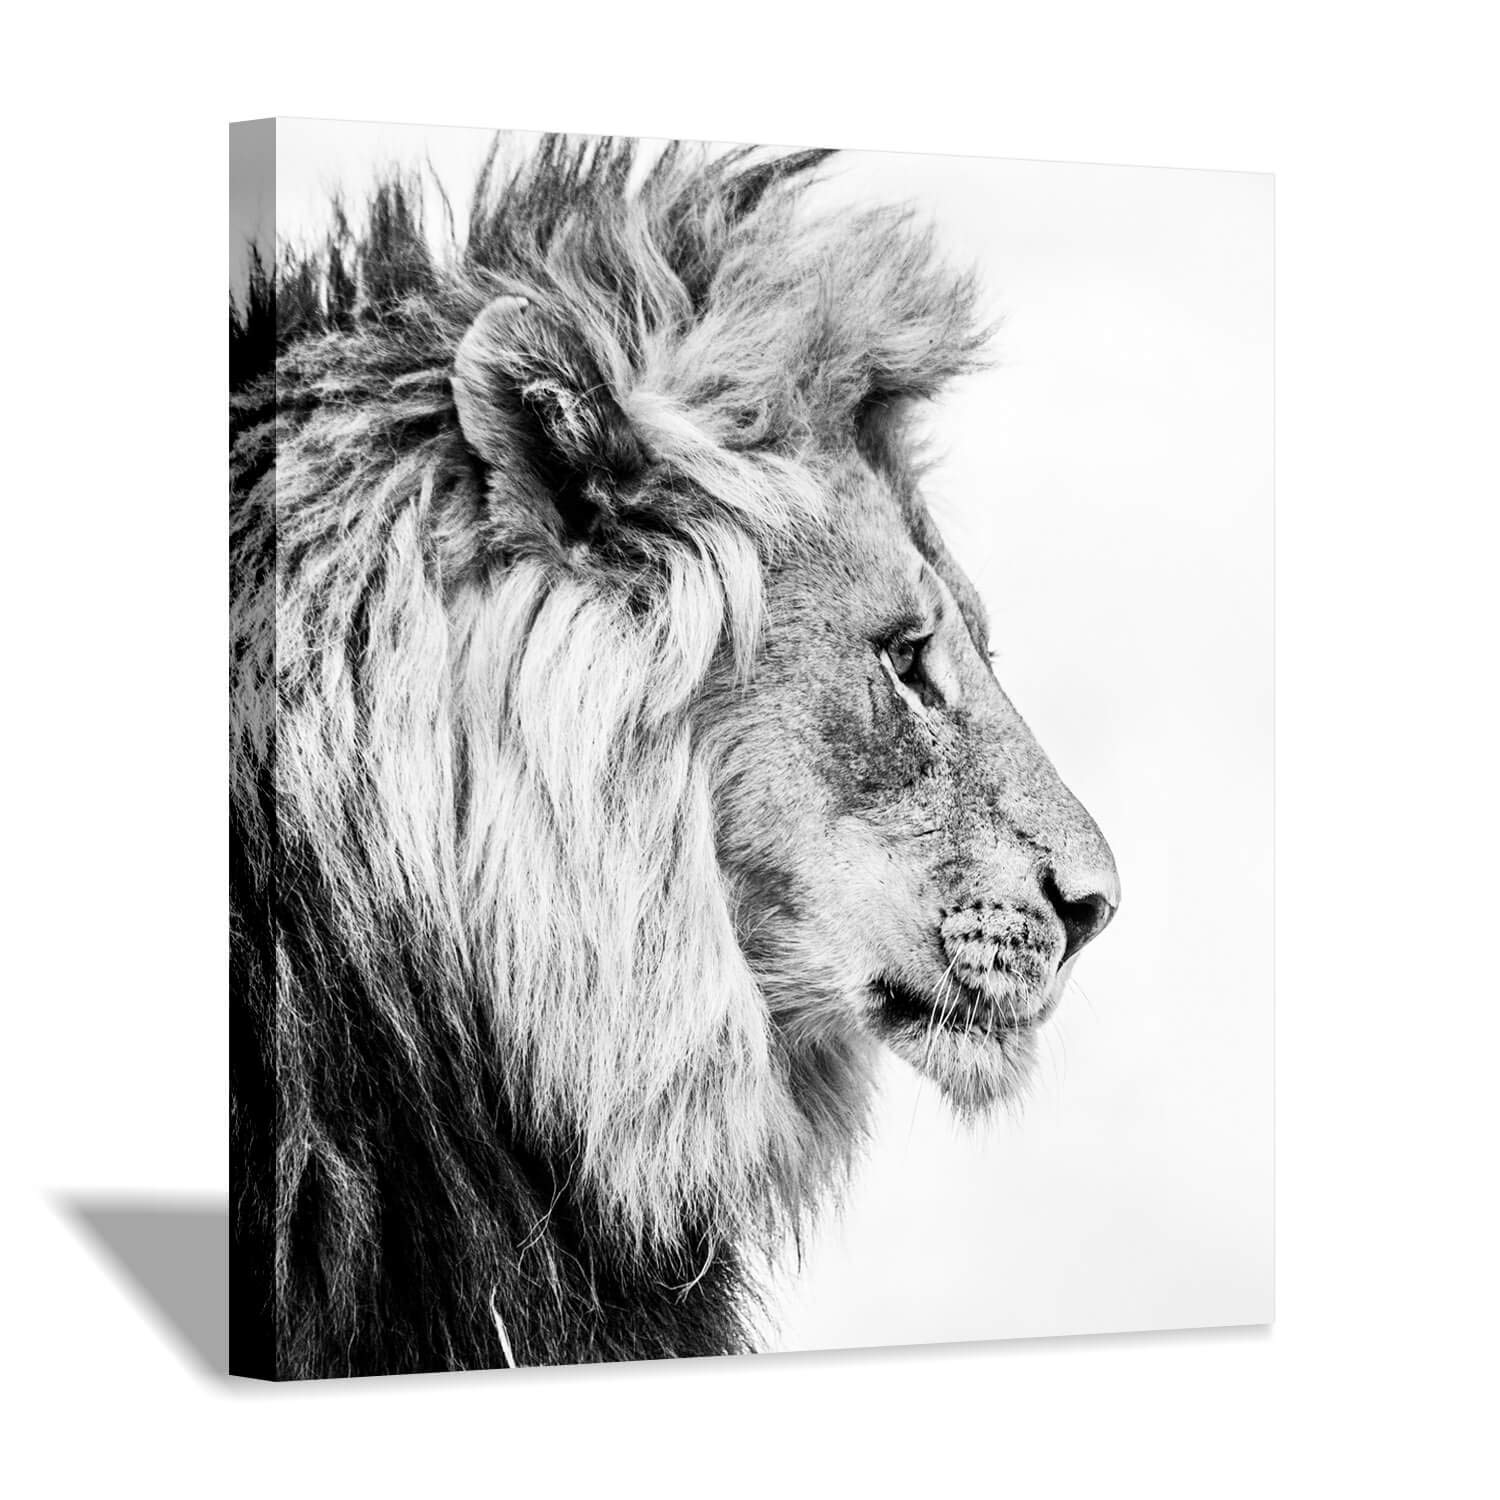 Hardy gallery lion art wall decor picture wildlife portrait graphic artwork print painting on wrapped canvas 24x24